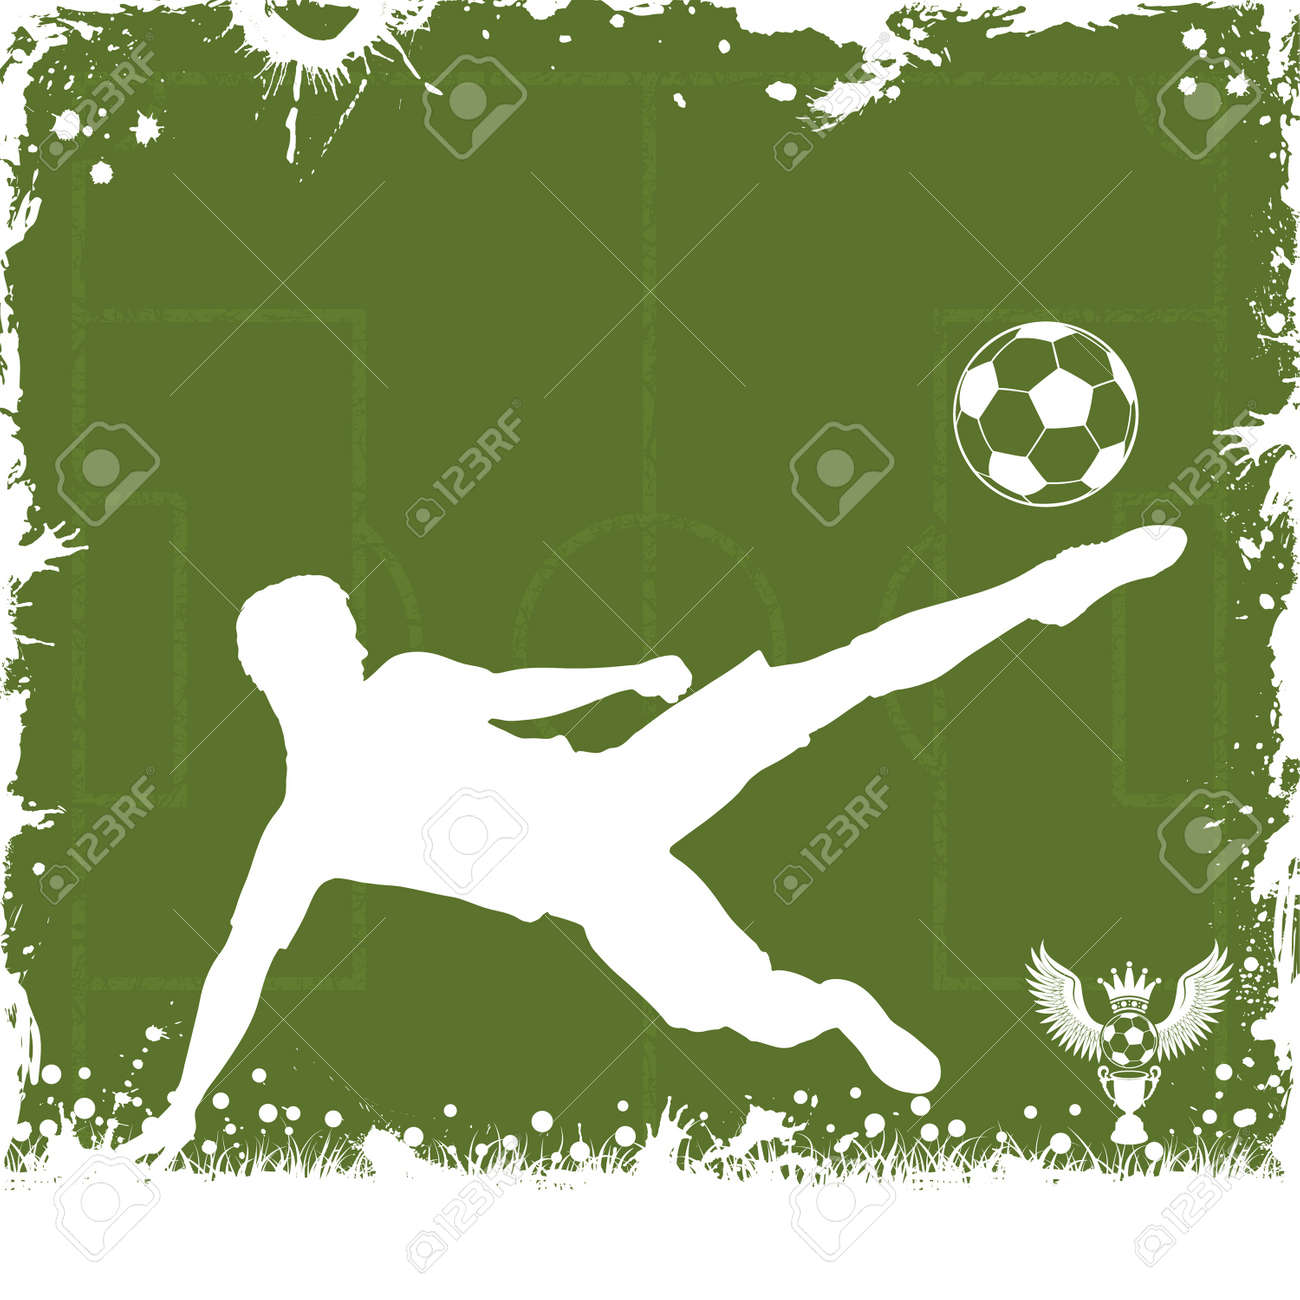 Soccer Grunge Frame with Football Player, vector illustration Stock Vector - 13483669